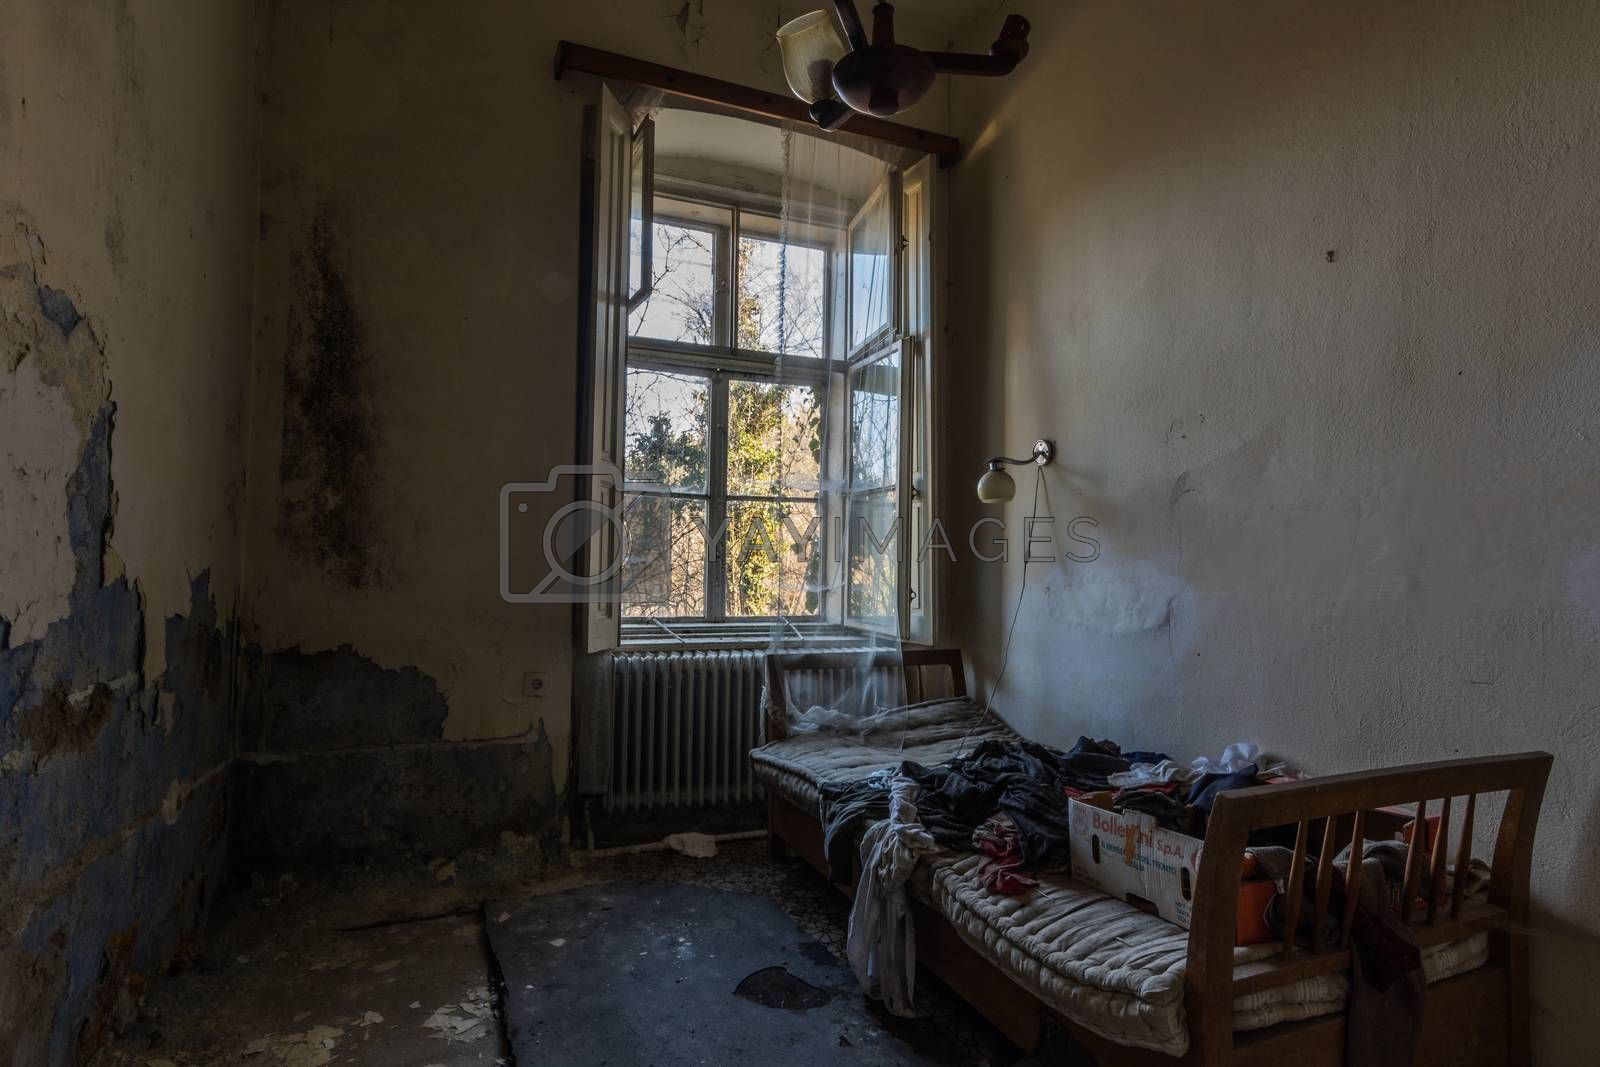 abandoned hotel room with bed and open window in the mountains